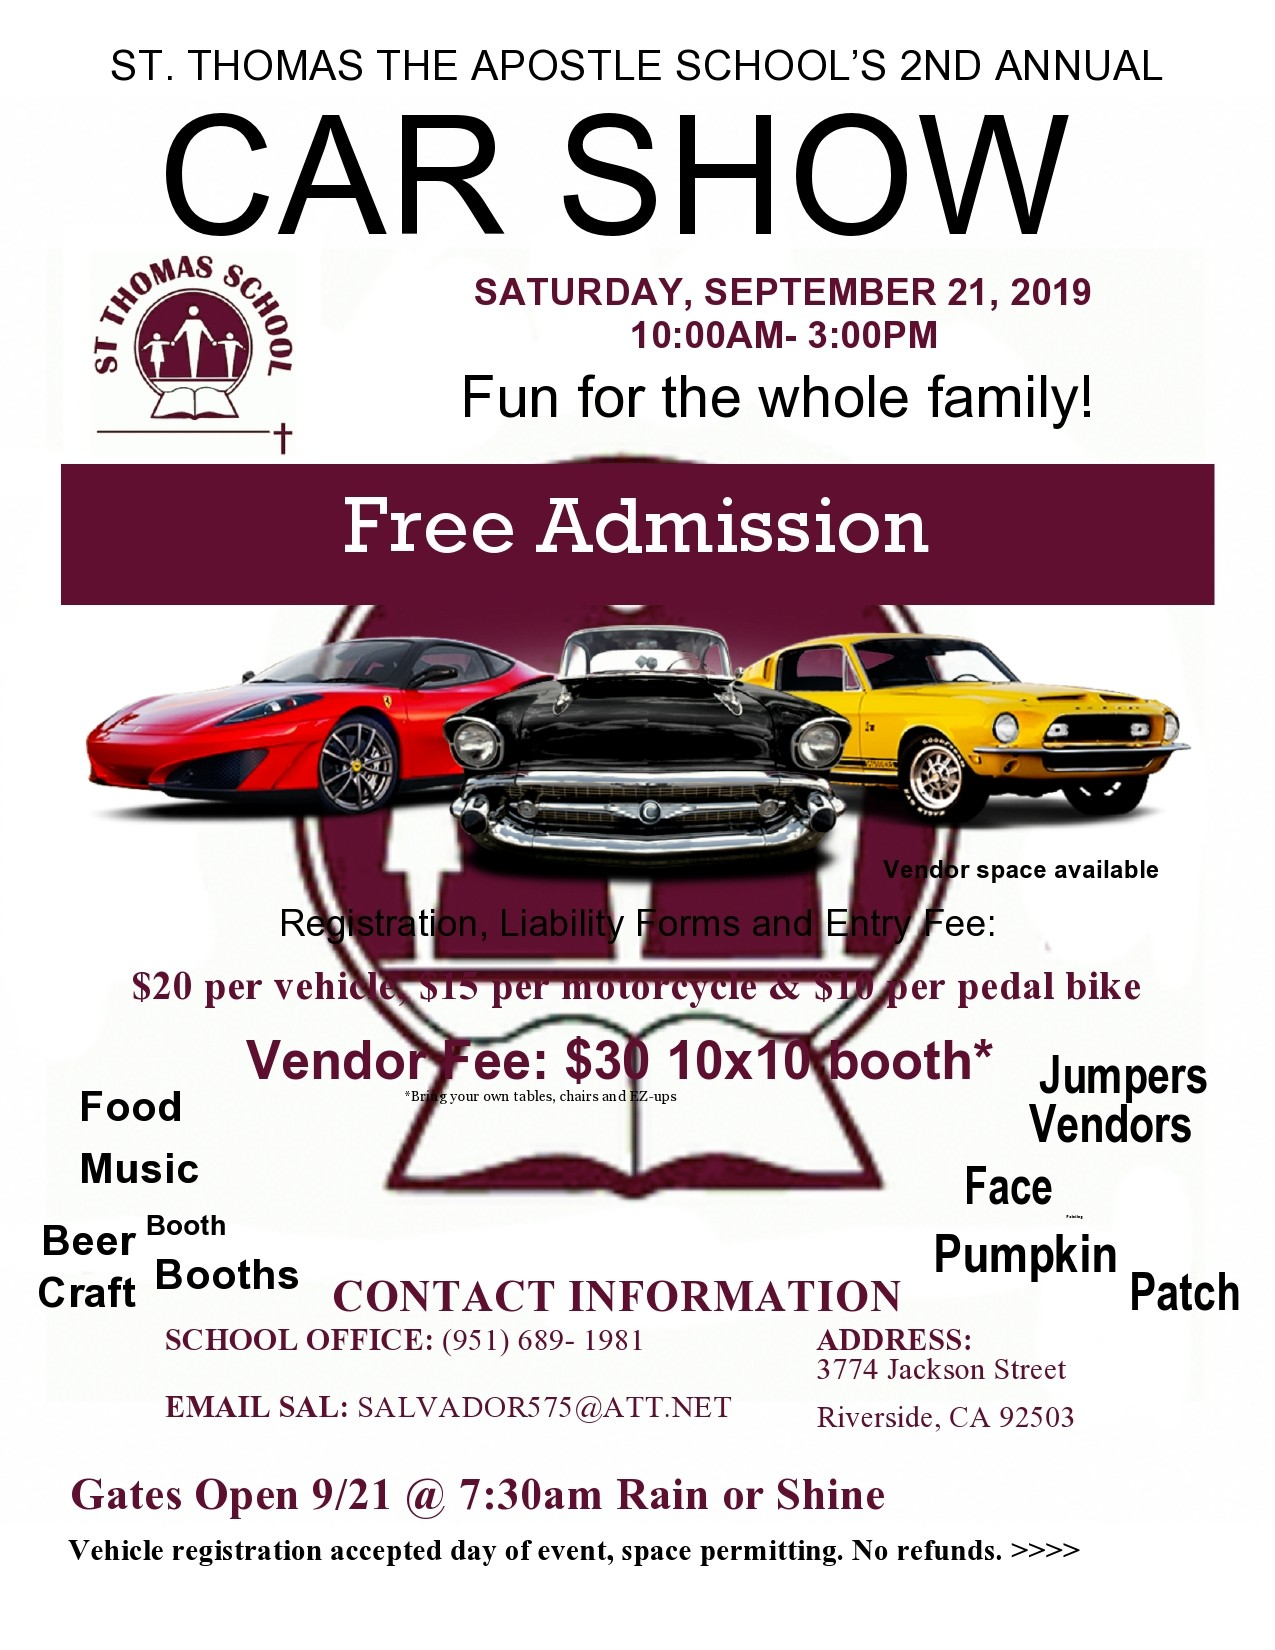 Free car show flyer 04